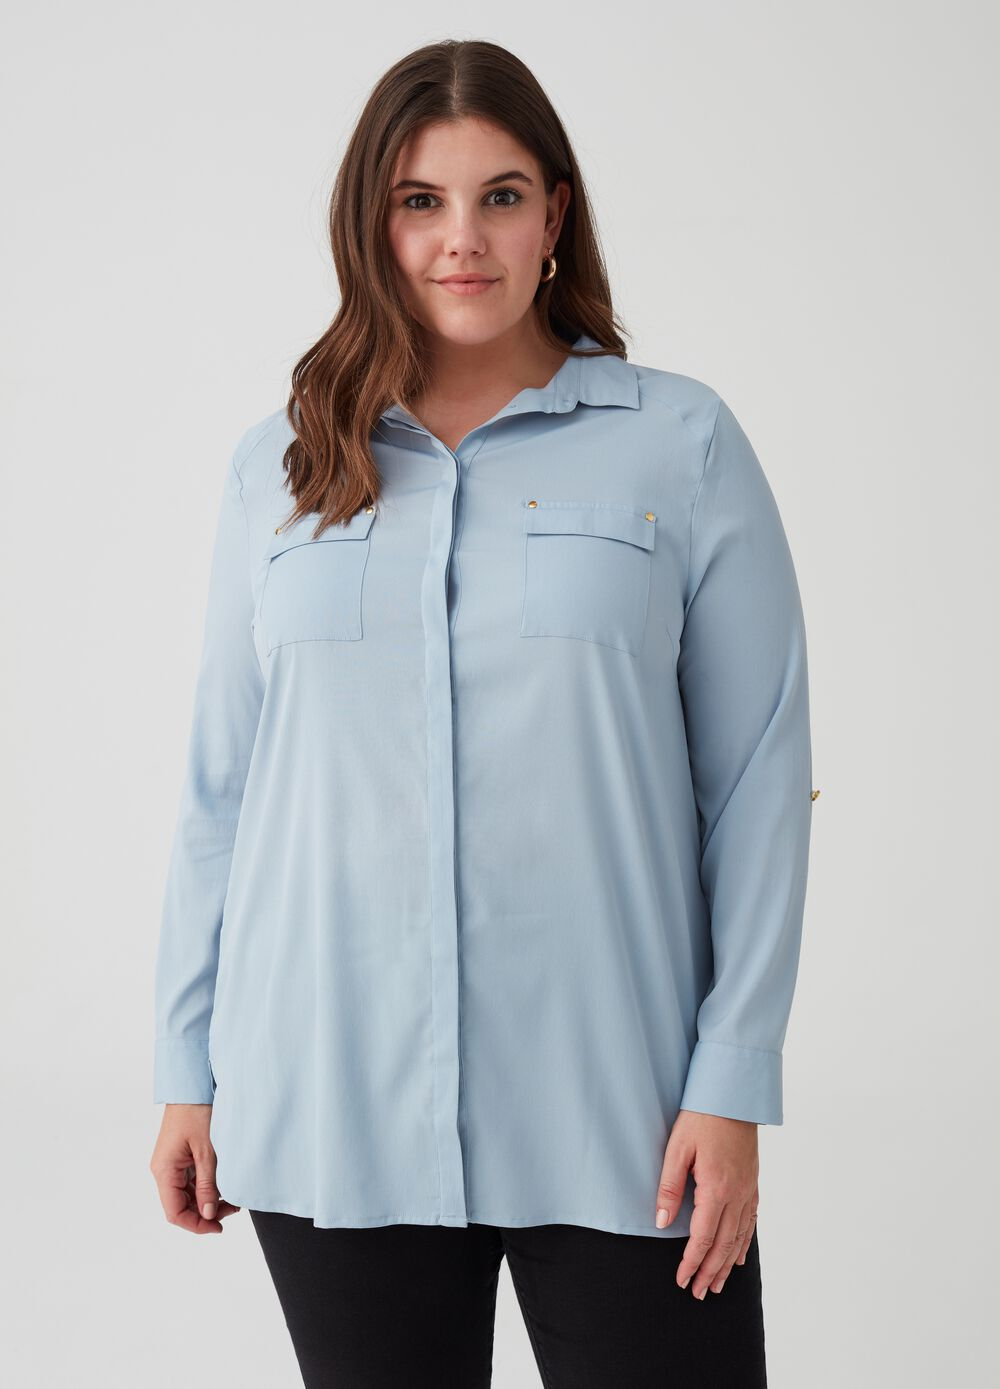 Curvy shirt with flap pockets